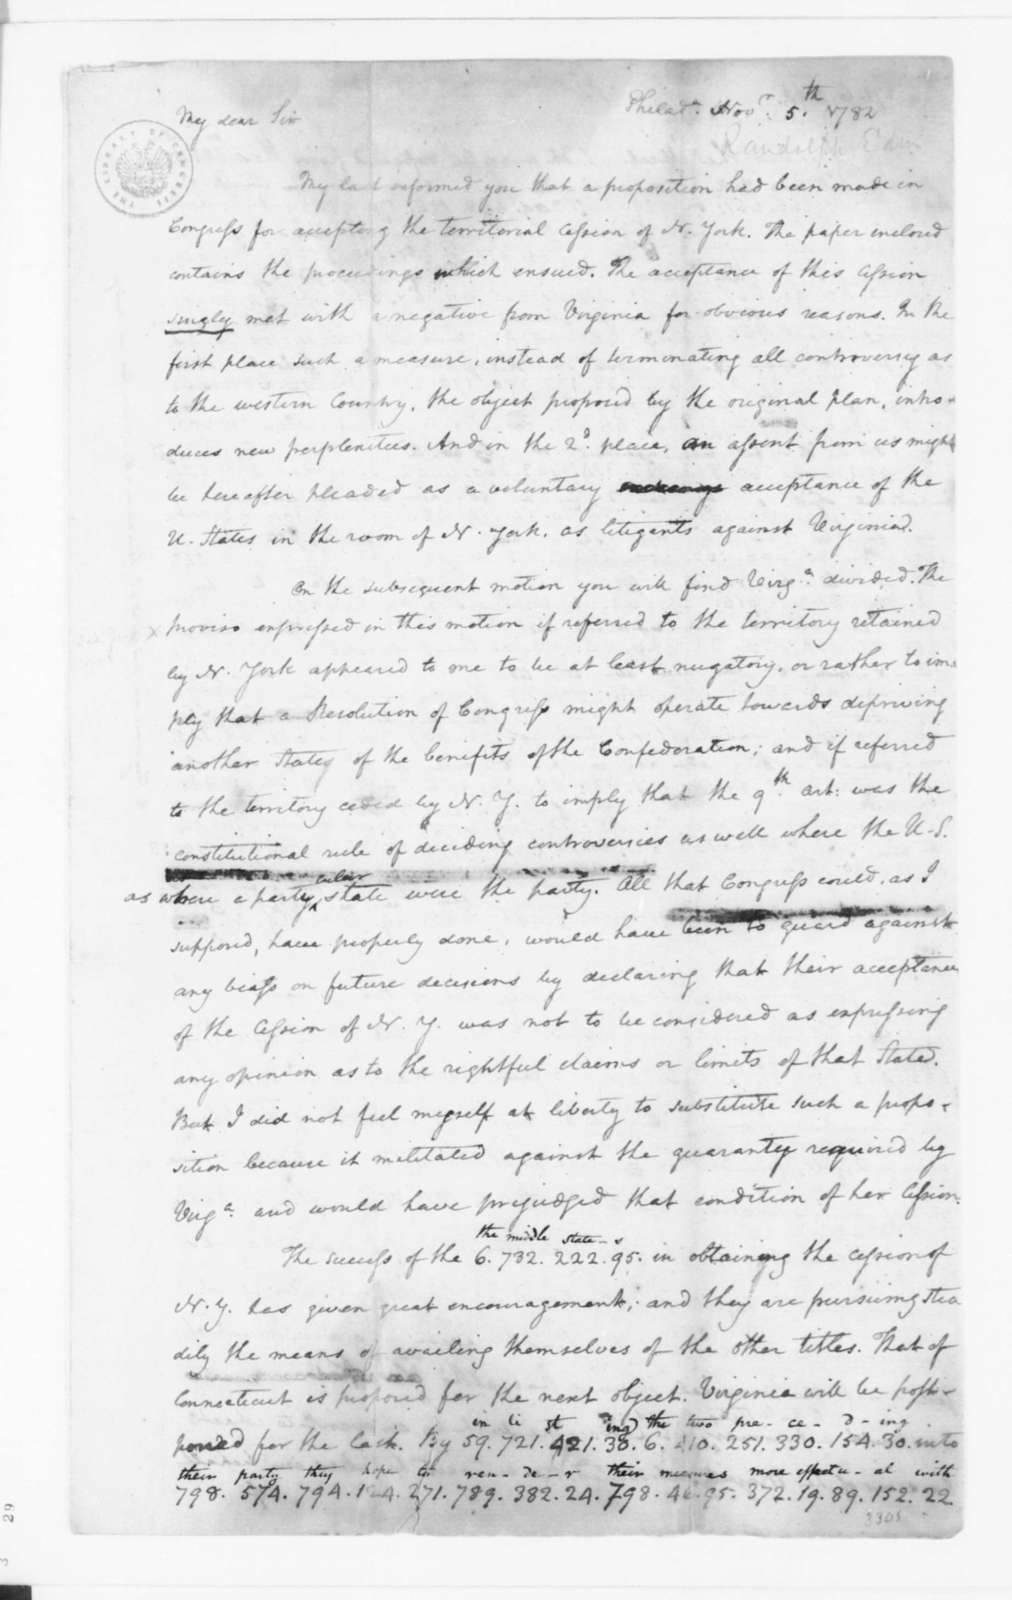 James Madison to Edmund Randolph, November 5, 1782. Partly in Cipher.